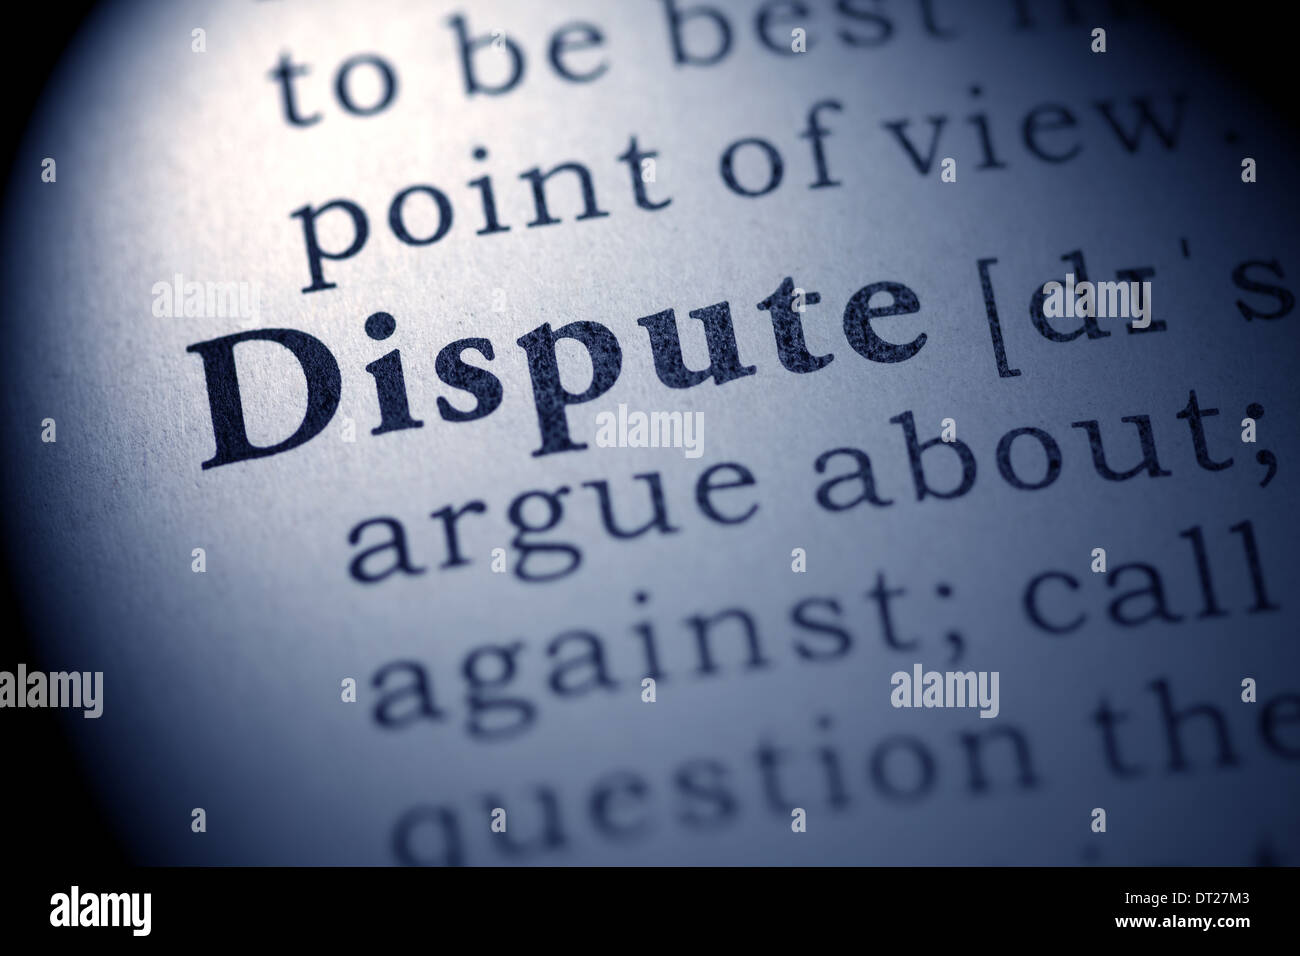 Fake Dictionary, definition of the word dispute. - Stock Image